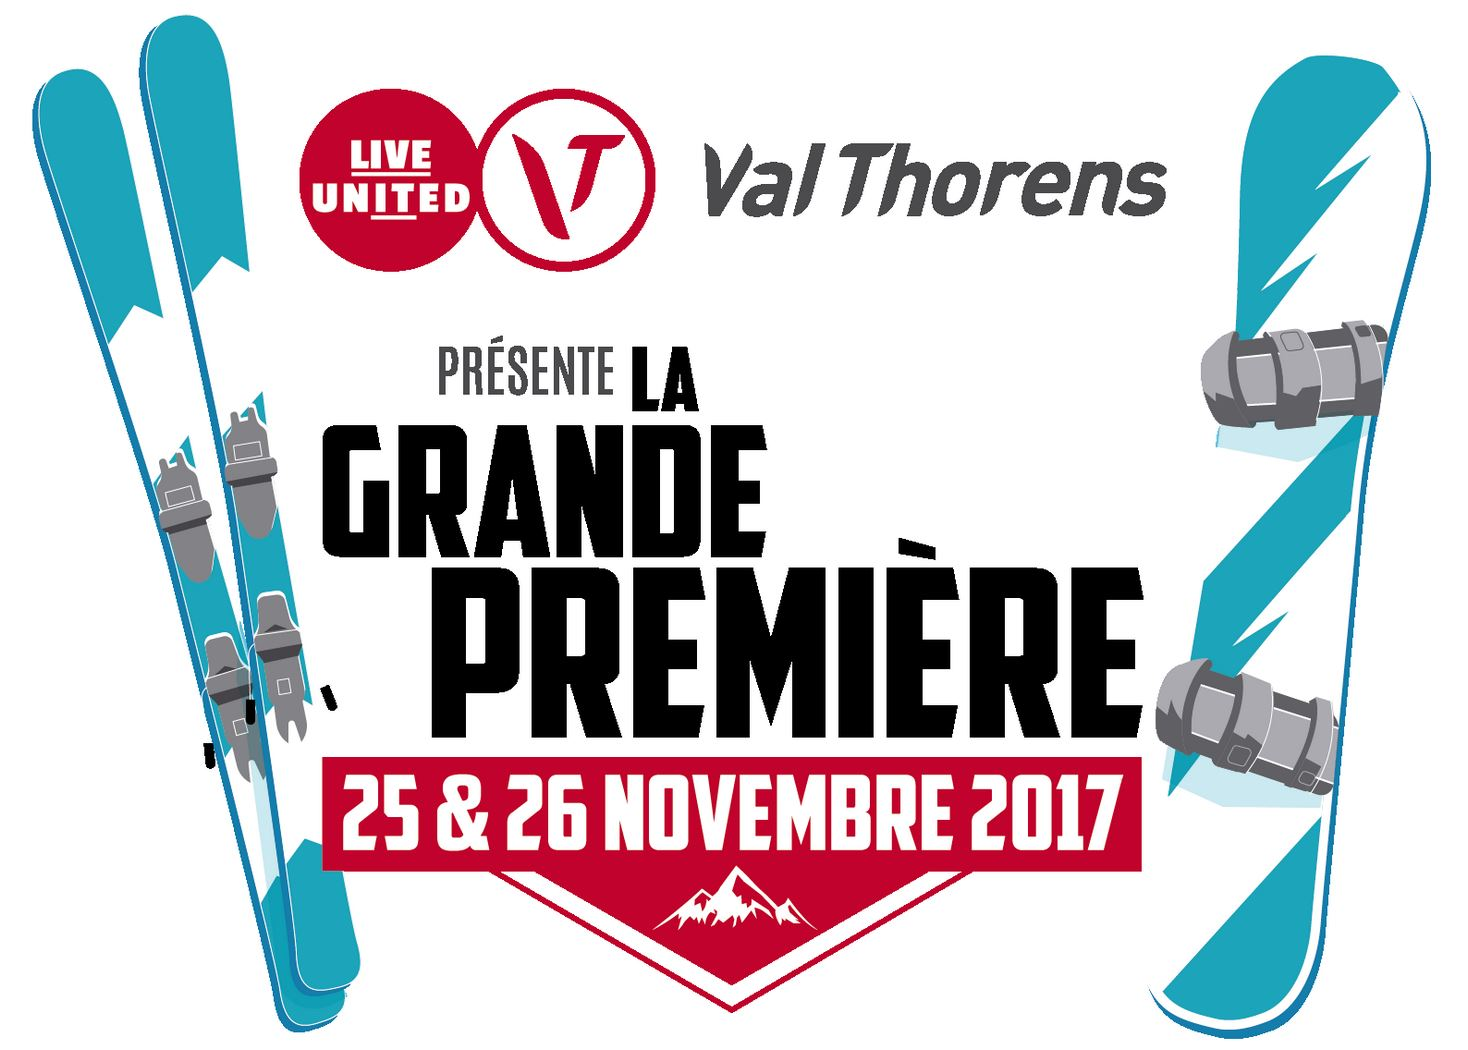 WEEKEND LA GRANDE PREMIERE - FROM 24 TO 26/11/17 - UCPA - FROM 185€ / PERS*